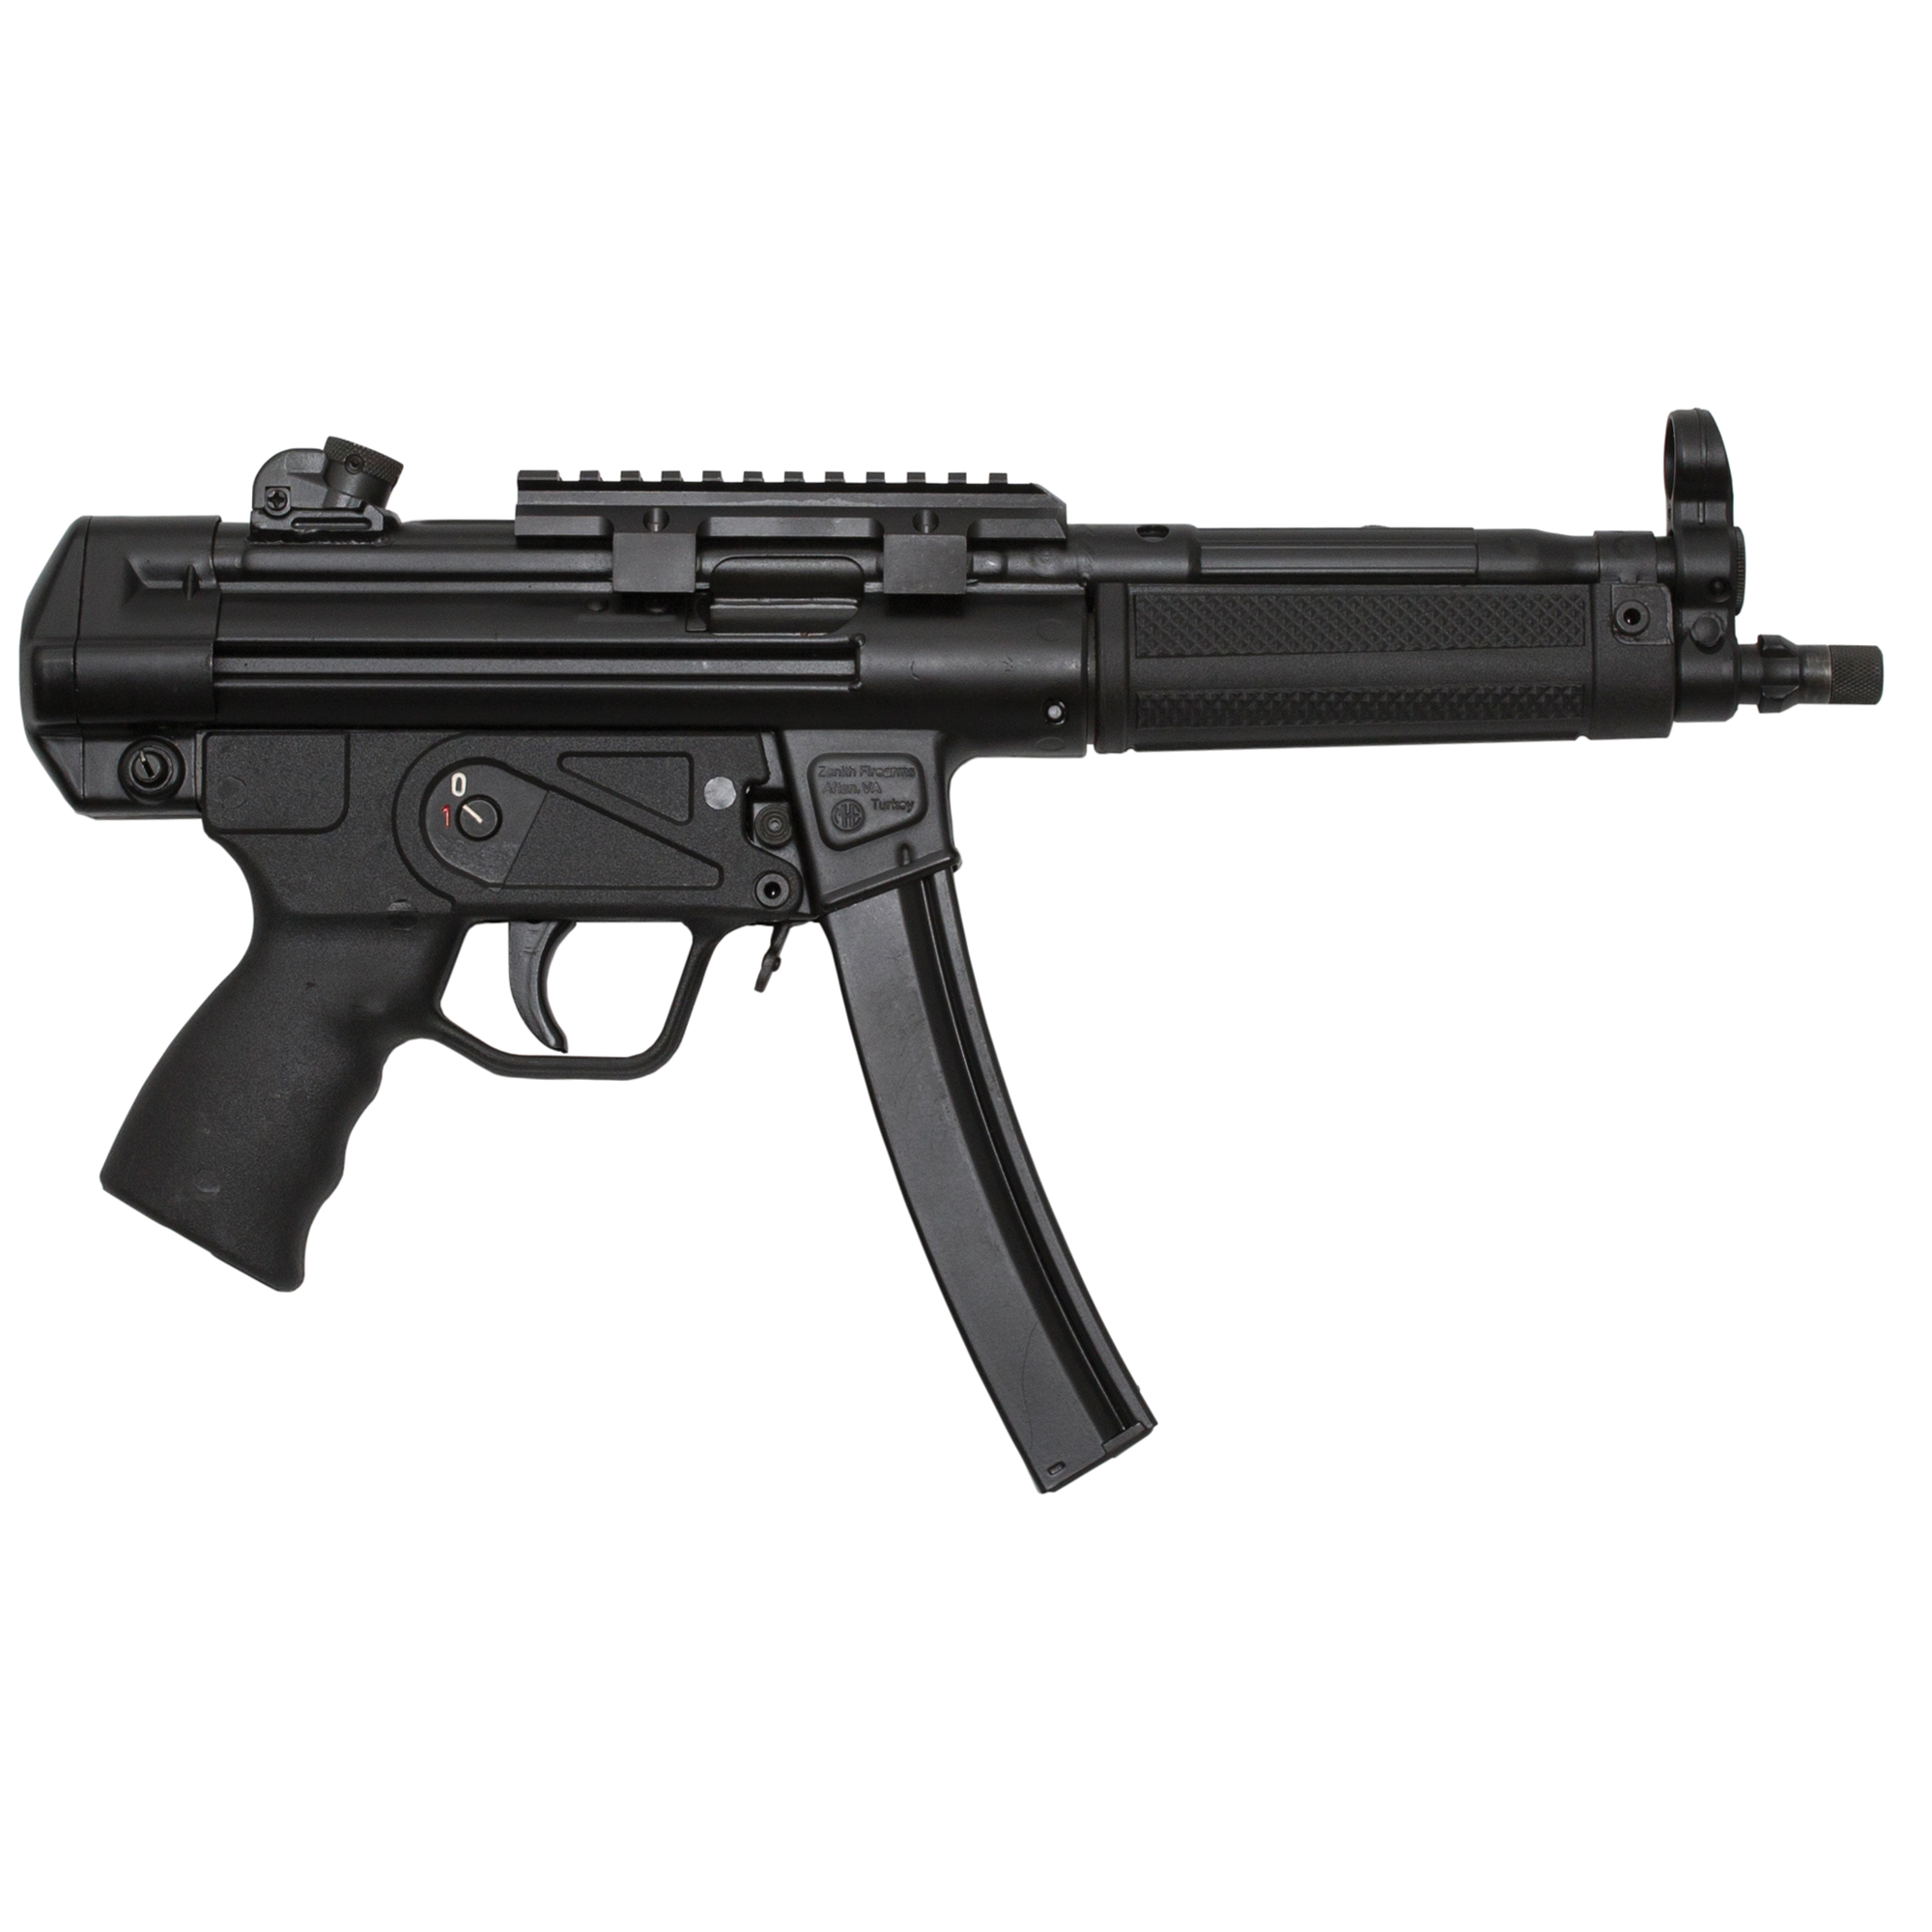 """Zenith's Z-5RS is a semi-automatic"""" pistol variant of one of the world's preeminent submachine guns. Inspired by the design and operating principle of the original manufacturer's famous battle rifle"""" this full-size close quarters weapon pairs the versatile 9mm cartridge with a performance maximizing barrel length"""" sight radius"""" and forearm. Produced in Turkey on original equipment"""" the Z-5RS is a perfect base for short-barreled-rifle and full-auto conversions"""" but also an effective pistol that affords iron-sight accuracy at distances exceeding 100 meters. It is covered by a five-year warranty"""" and ships in an MKE hard case with a slimline forearm"""" a Picatinny optic rail"""" three magazines"""" a military-style sling"""" two extra takedown pins"""" a cleaning kit"""" and a user manual."""